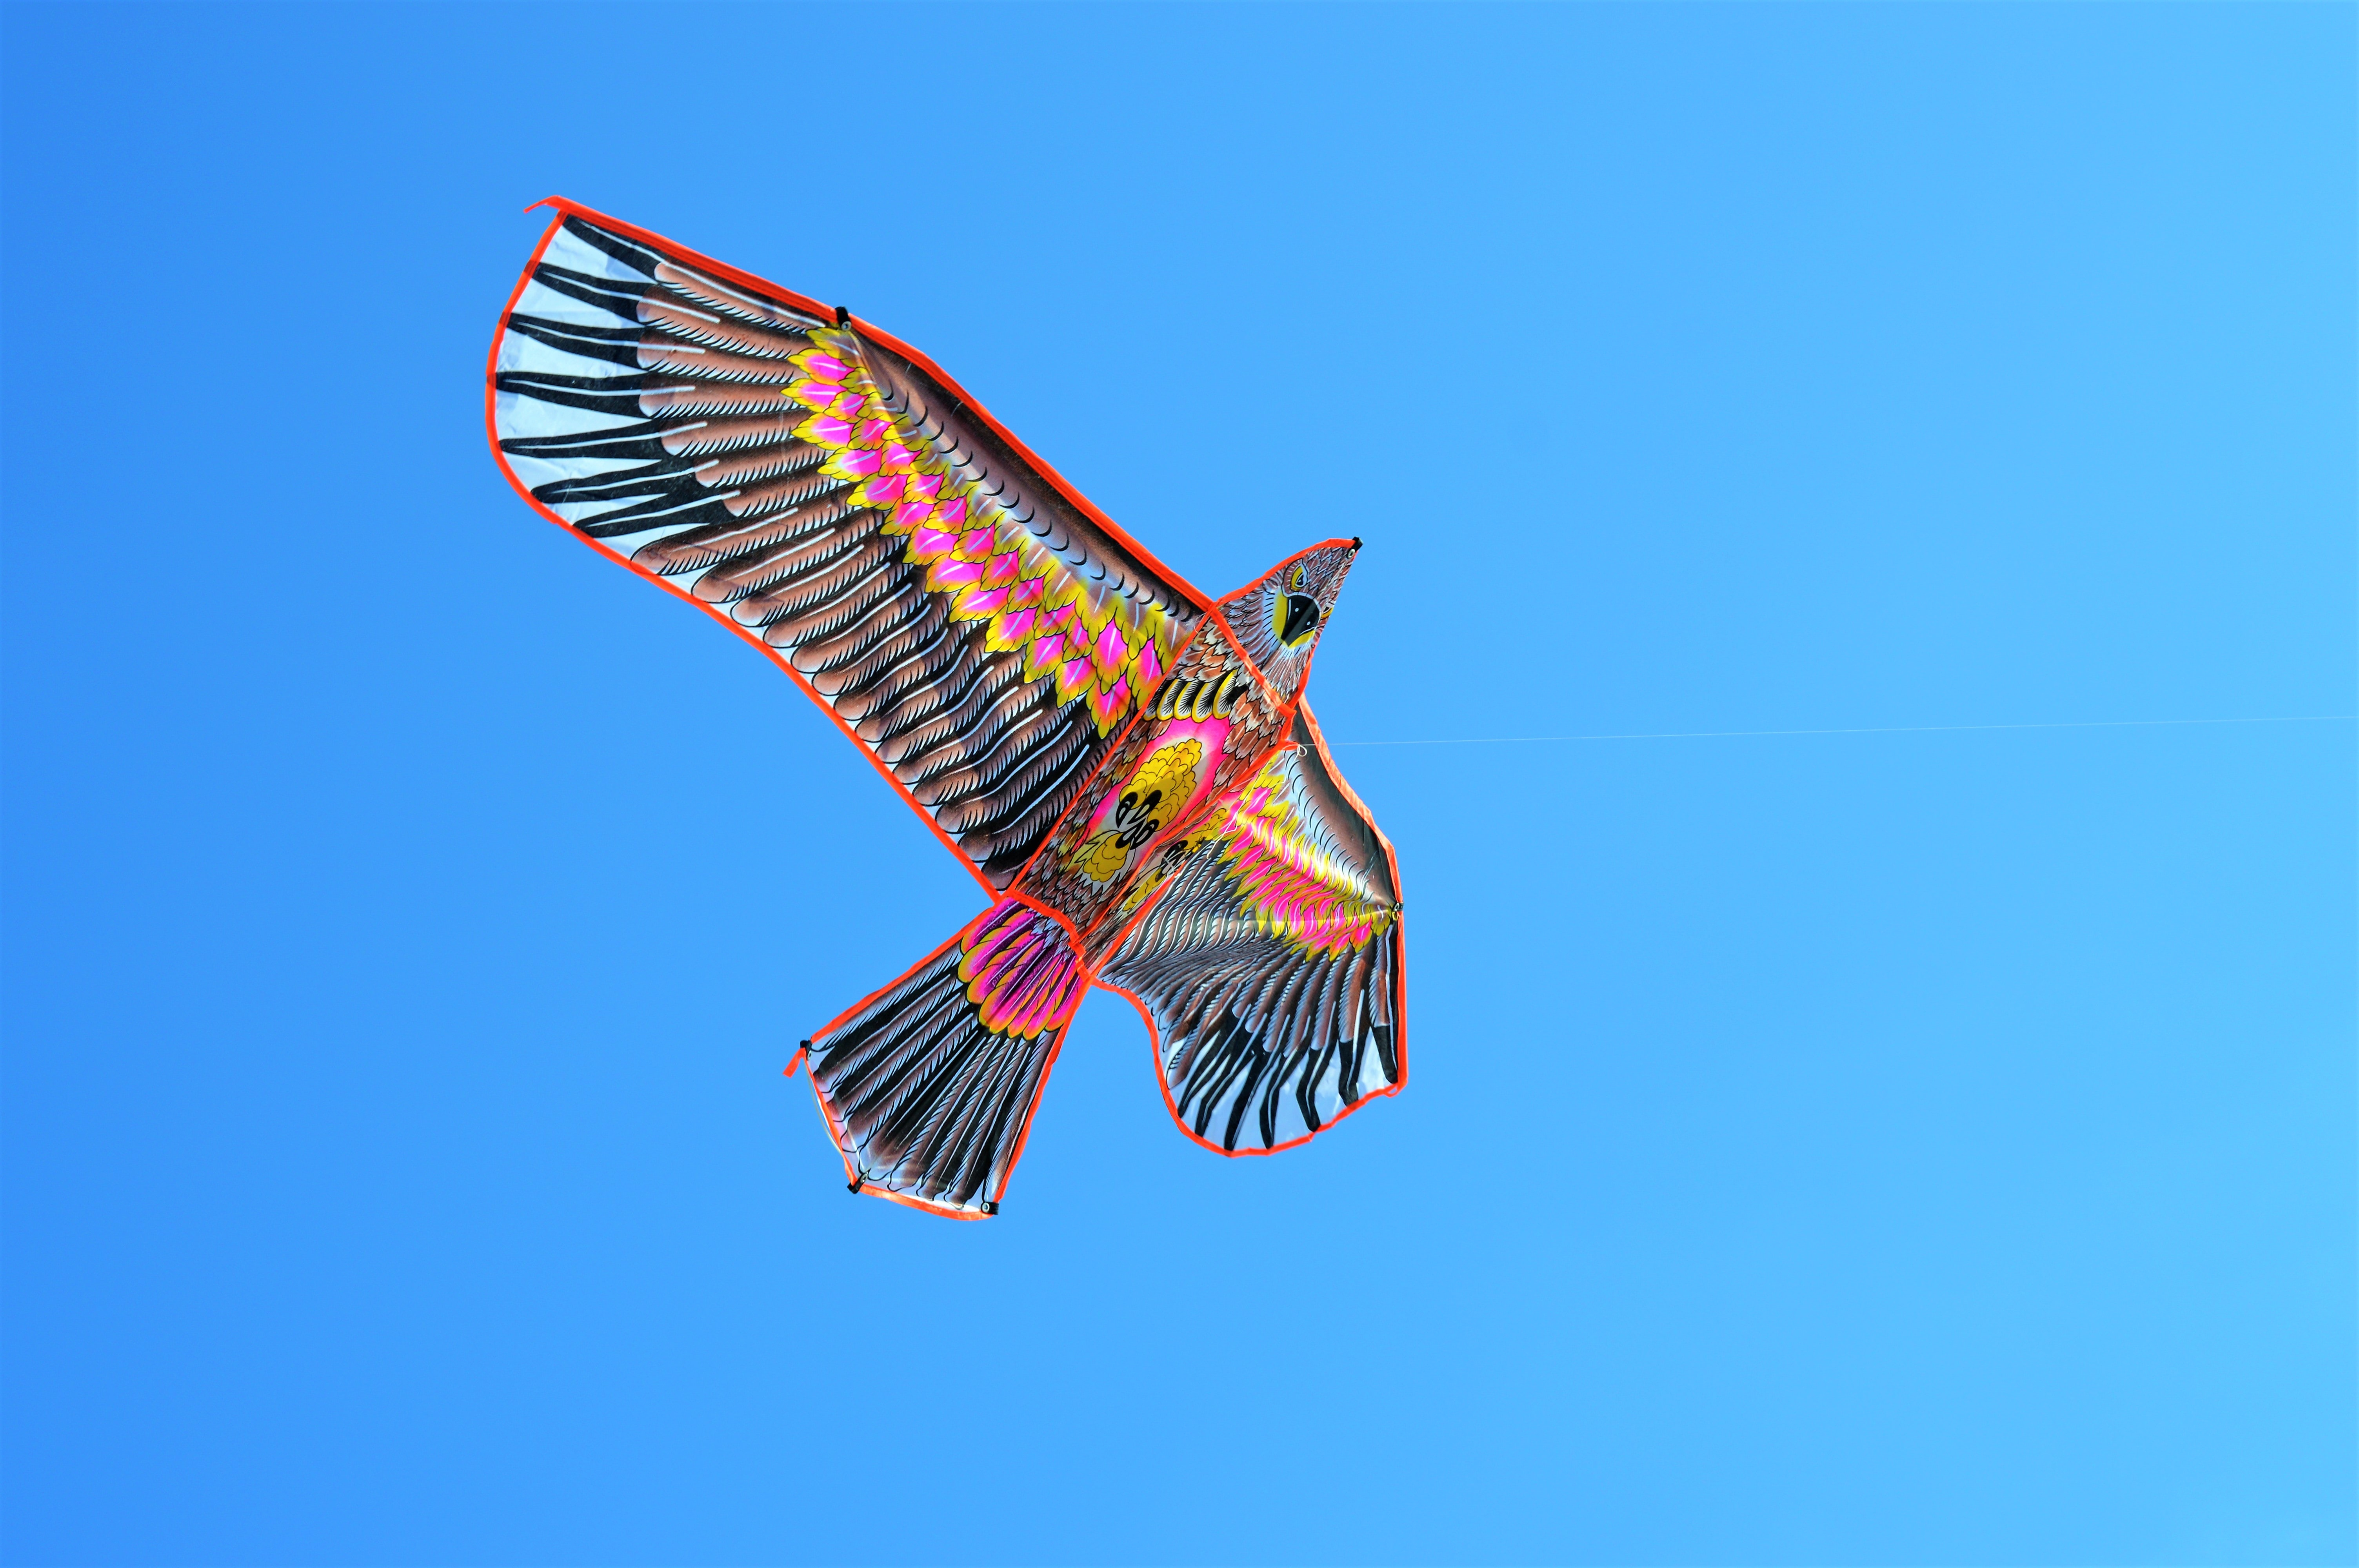 photo of black and pink kite